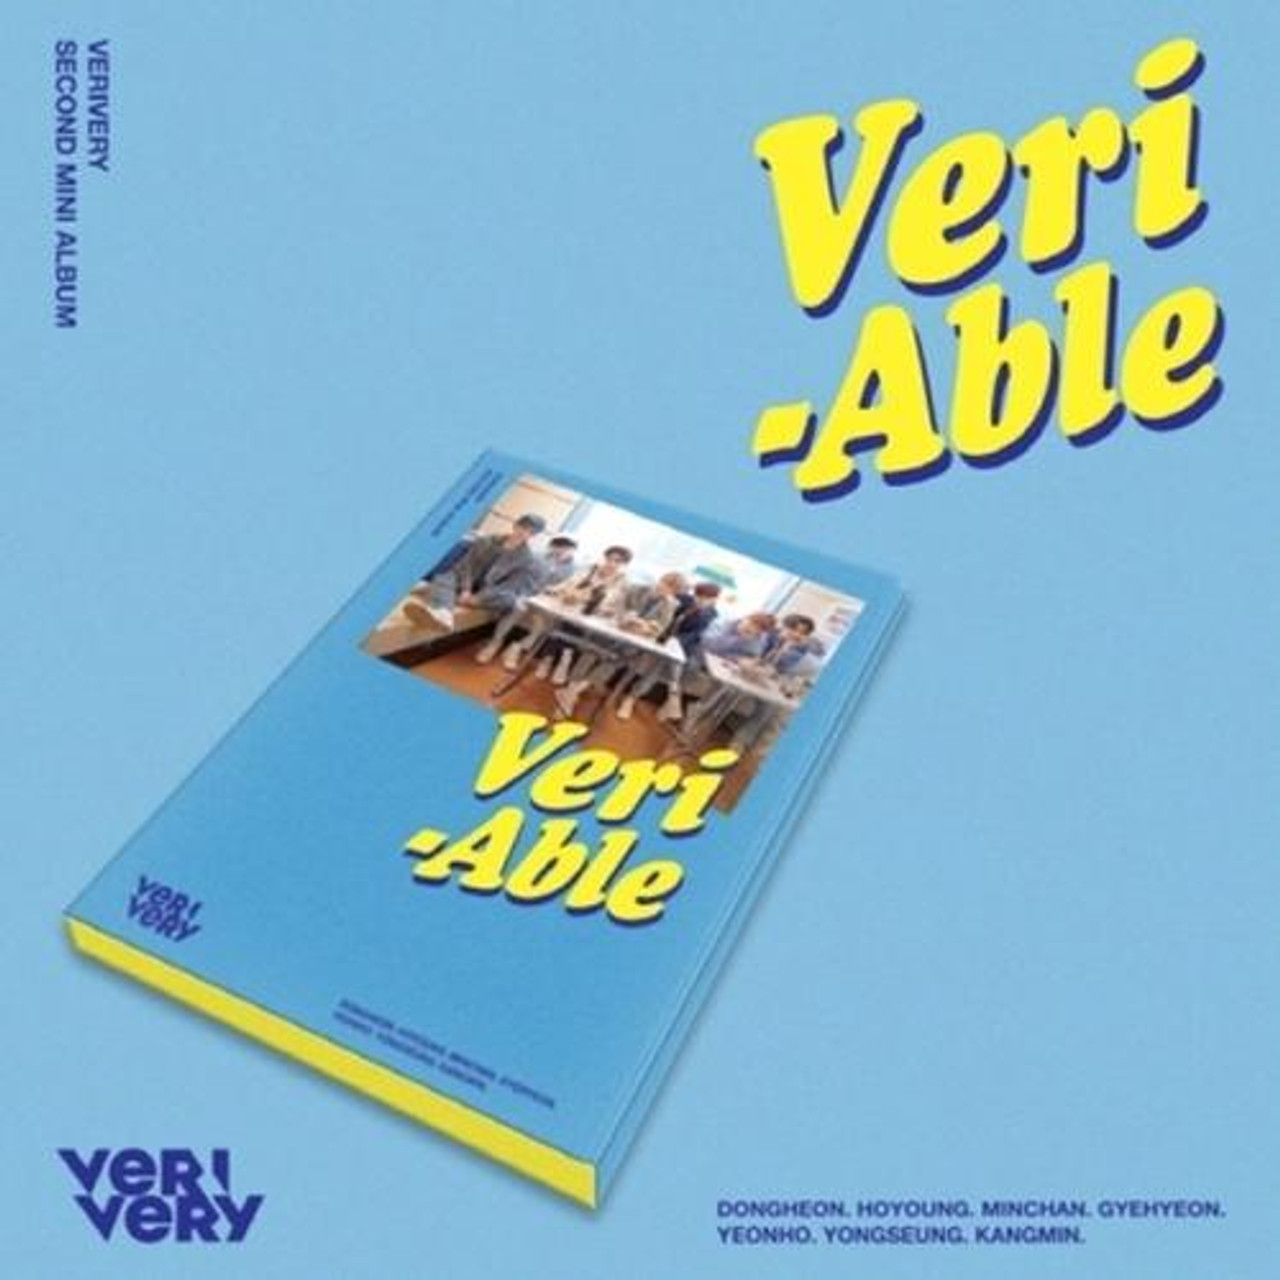 VERIVERY - 2nd Mini [VERI-ABLE] (Kihno Album - DHL Shipping Only)